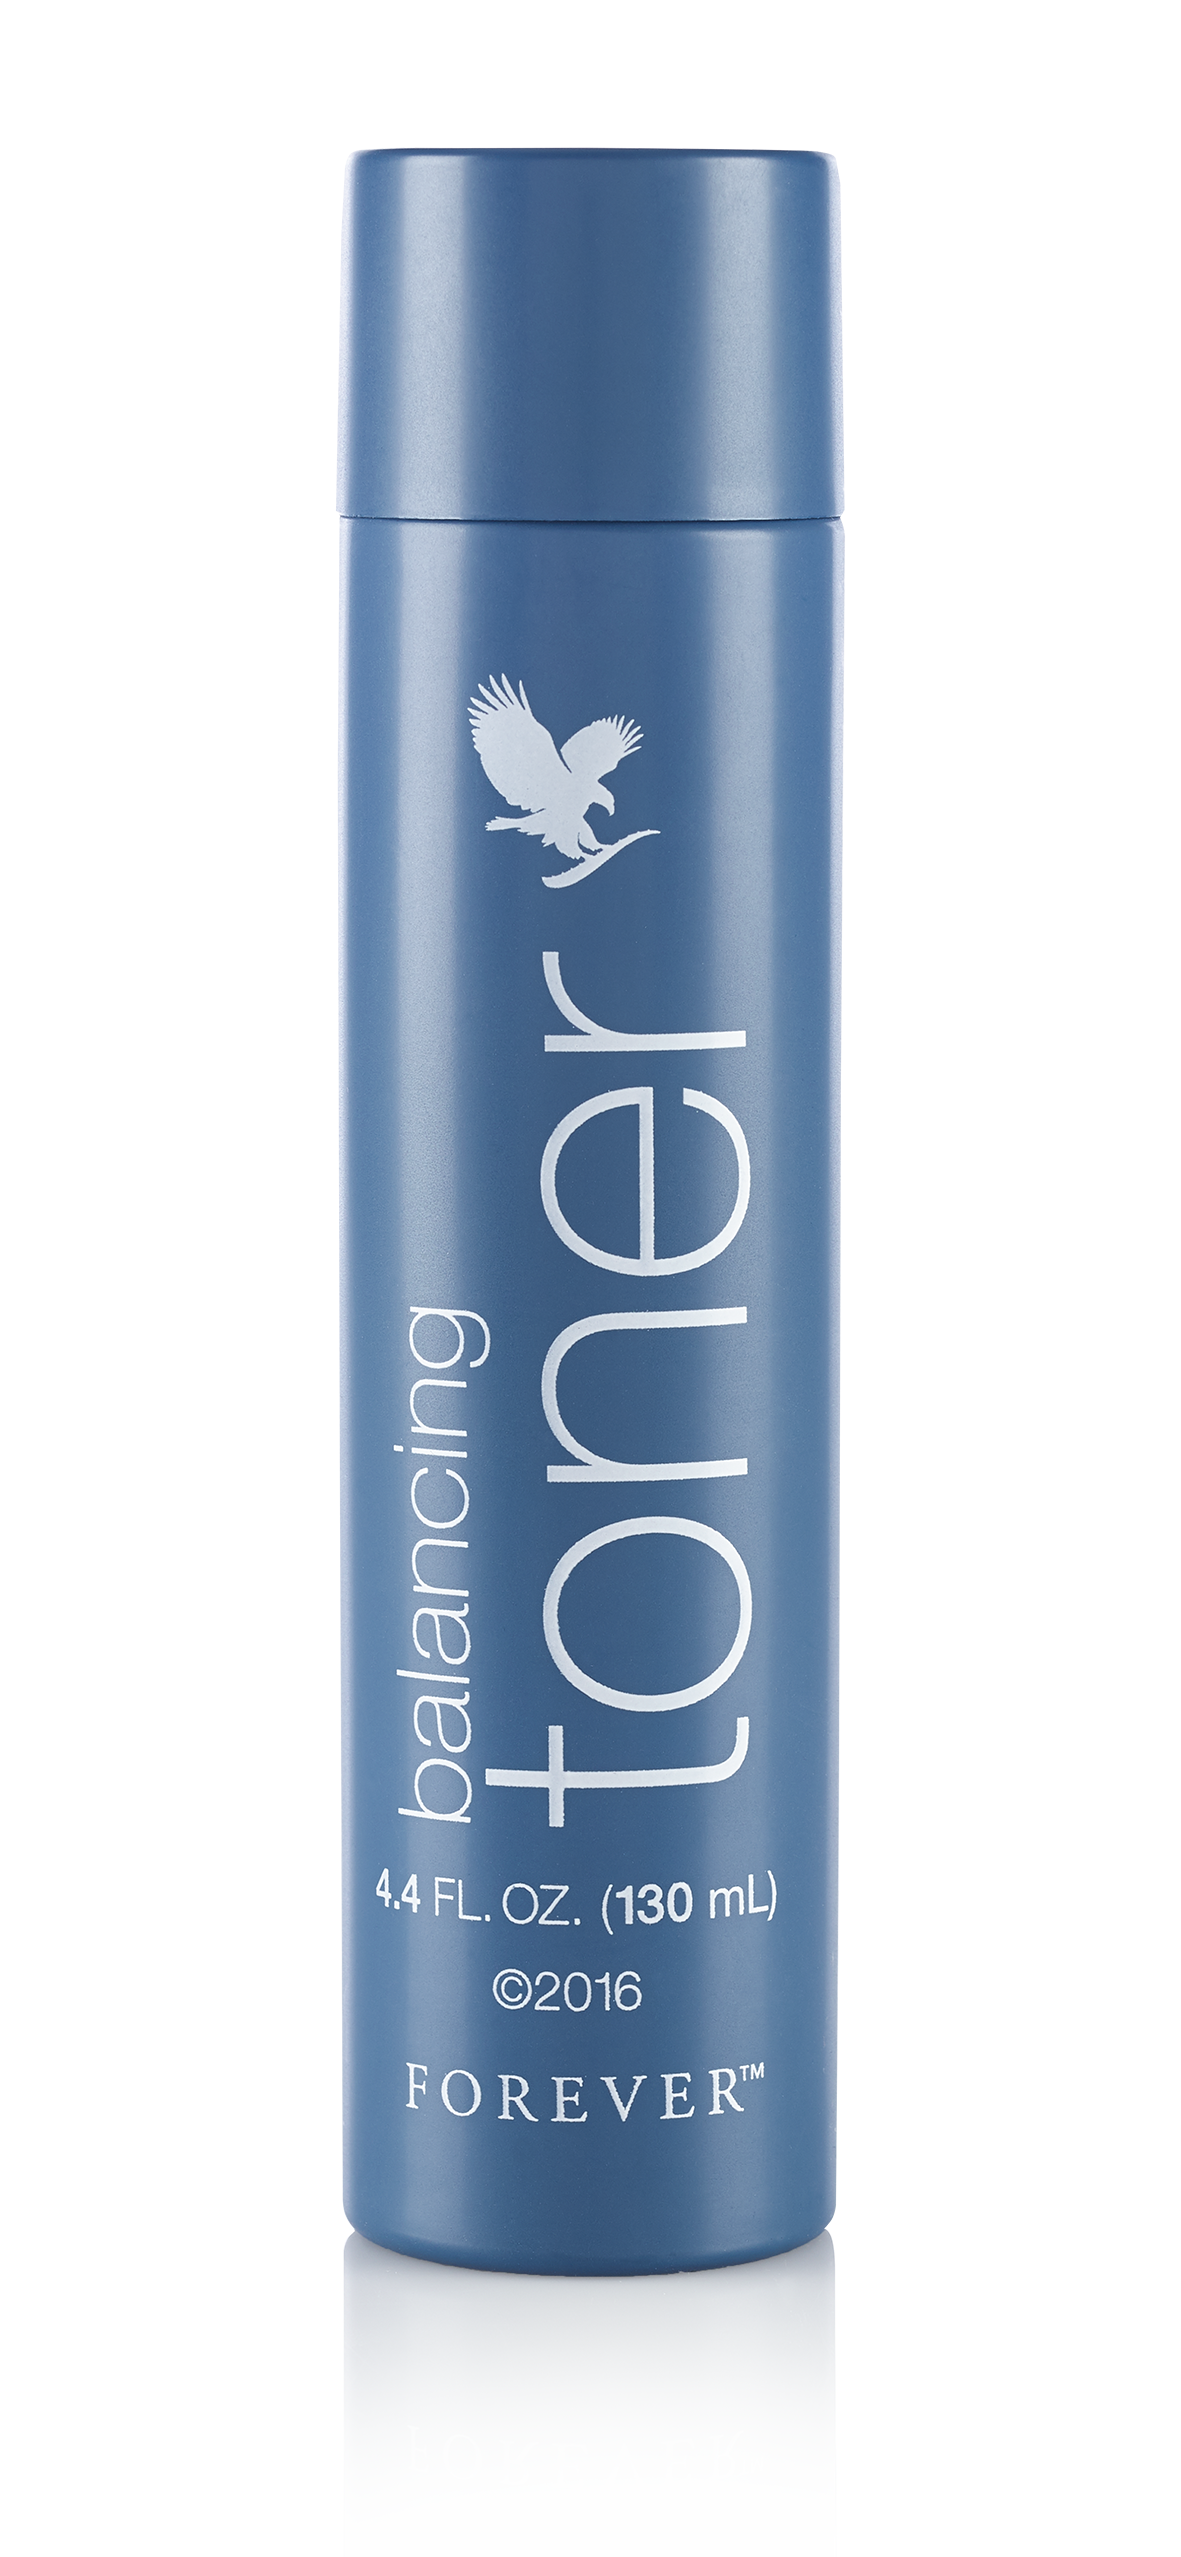 Balancing toner conditions the skin and stabilizes its pH balance. Freshens and soothes the skin while restoring its moisture balance.